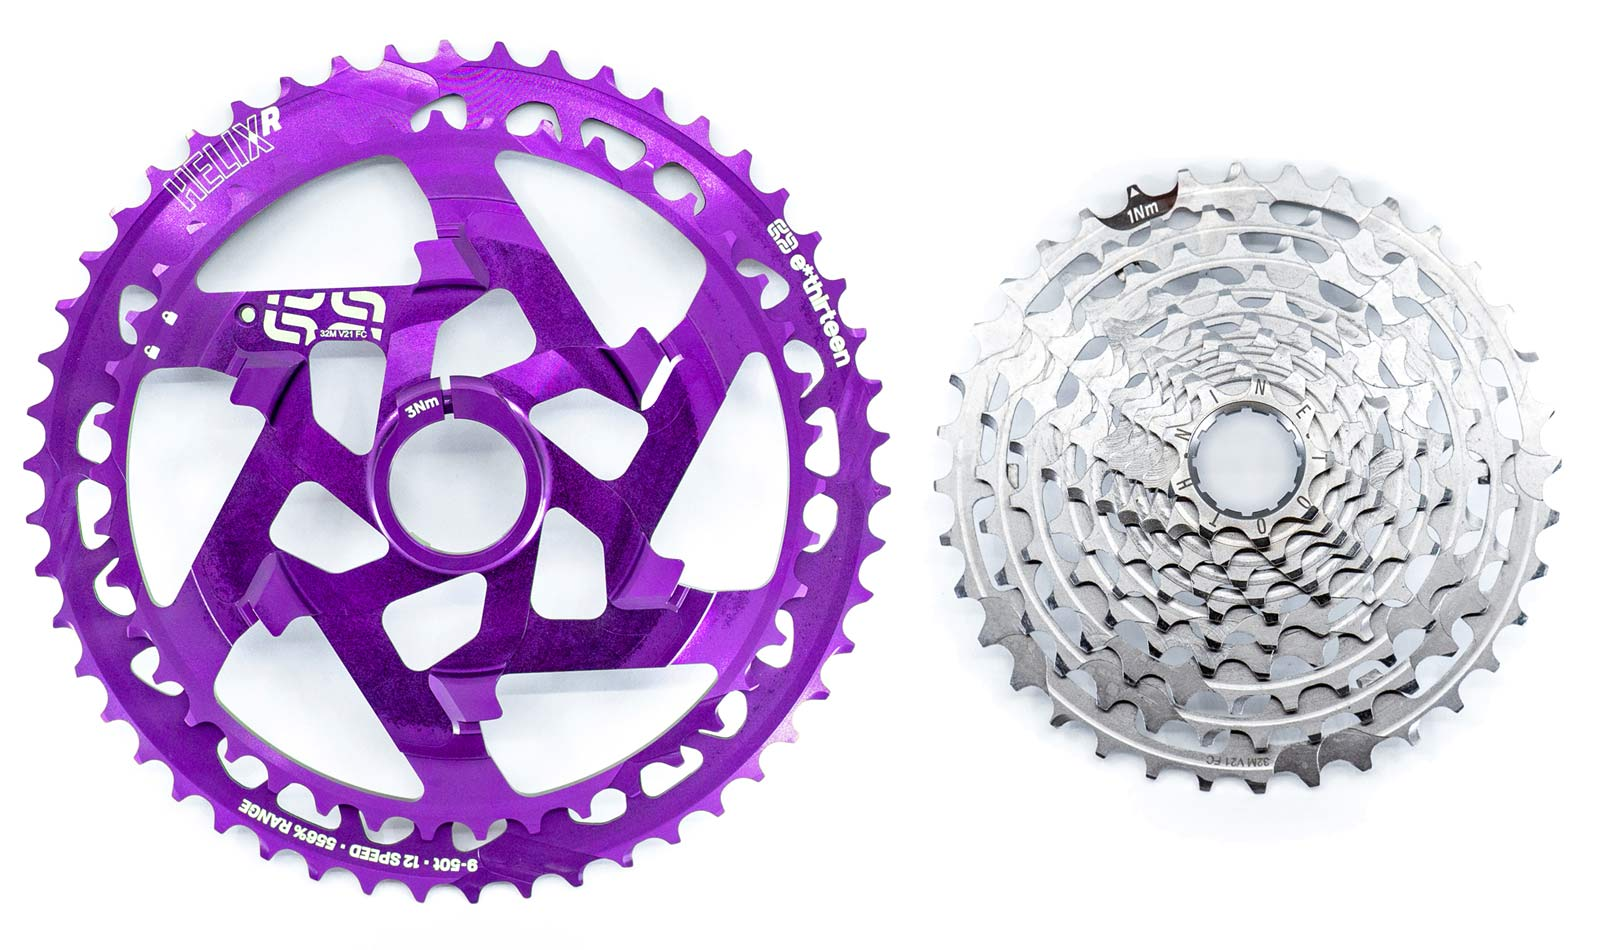 e*thirteen Helix R wide-range lightweight cassette, e13 12-speed or 11-speed,replaceable cog clusters